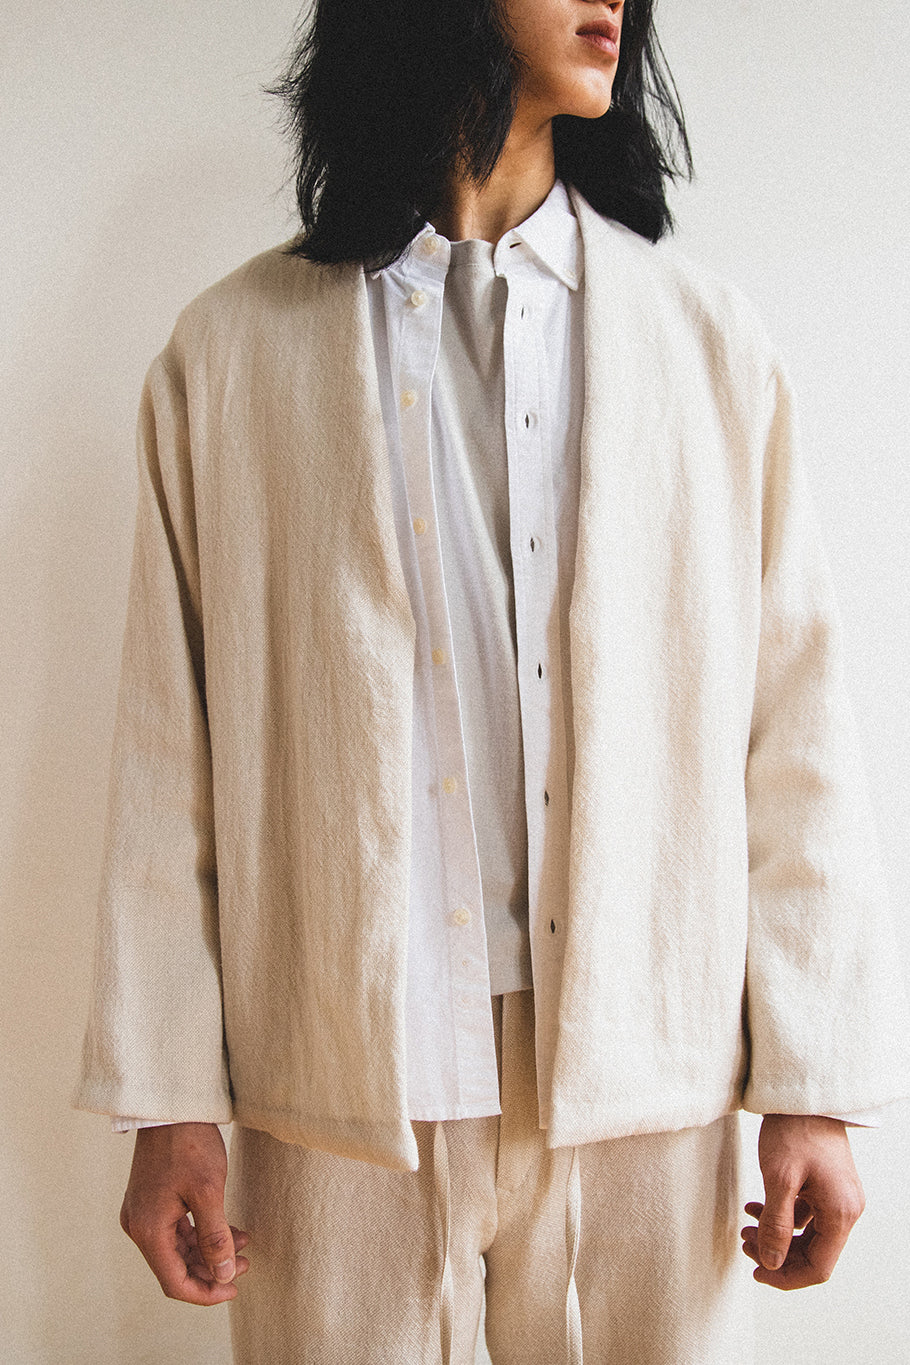 SOFT JACKET IN BEIGE